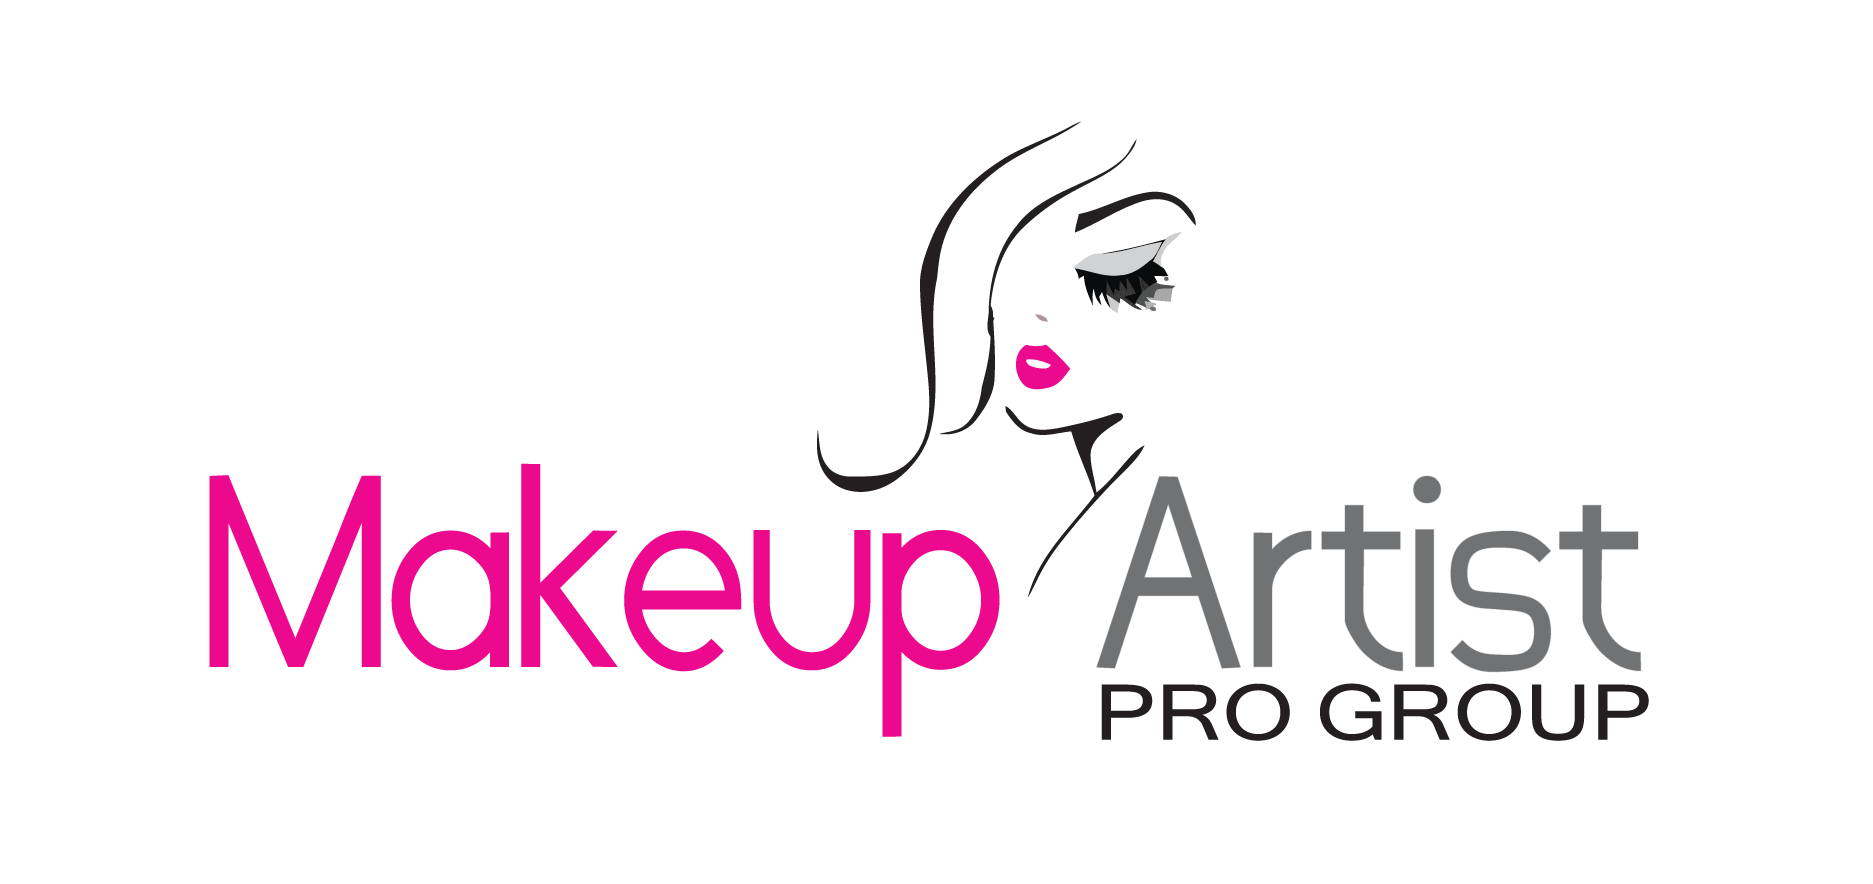 Skin Care And Makeup Artist Pro Group Frederick MD